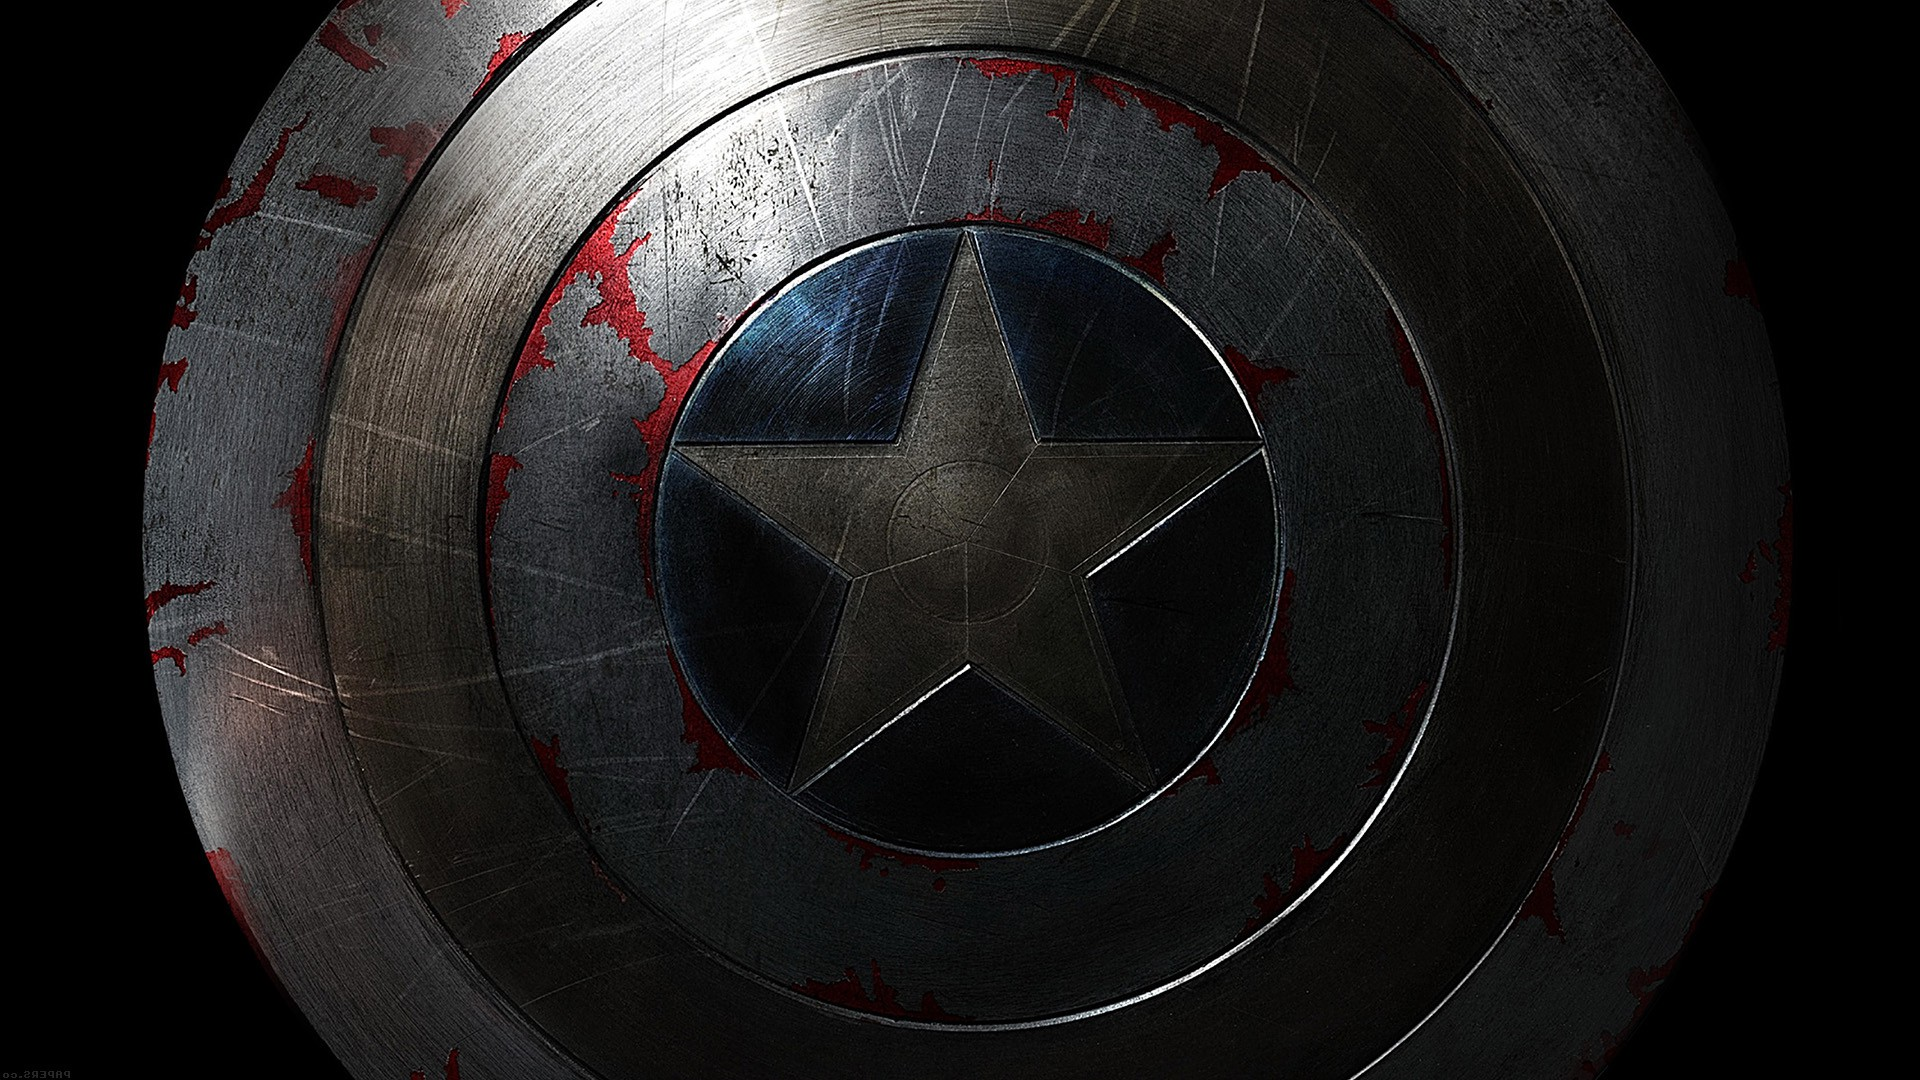 Future Cars 2018 Wallpapers Shields Captain America Marvel Comics Wallpapers Hd